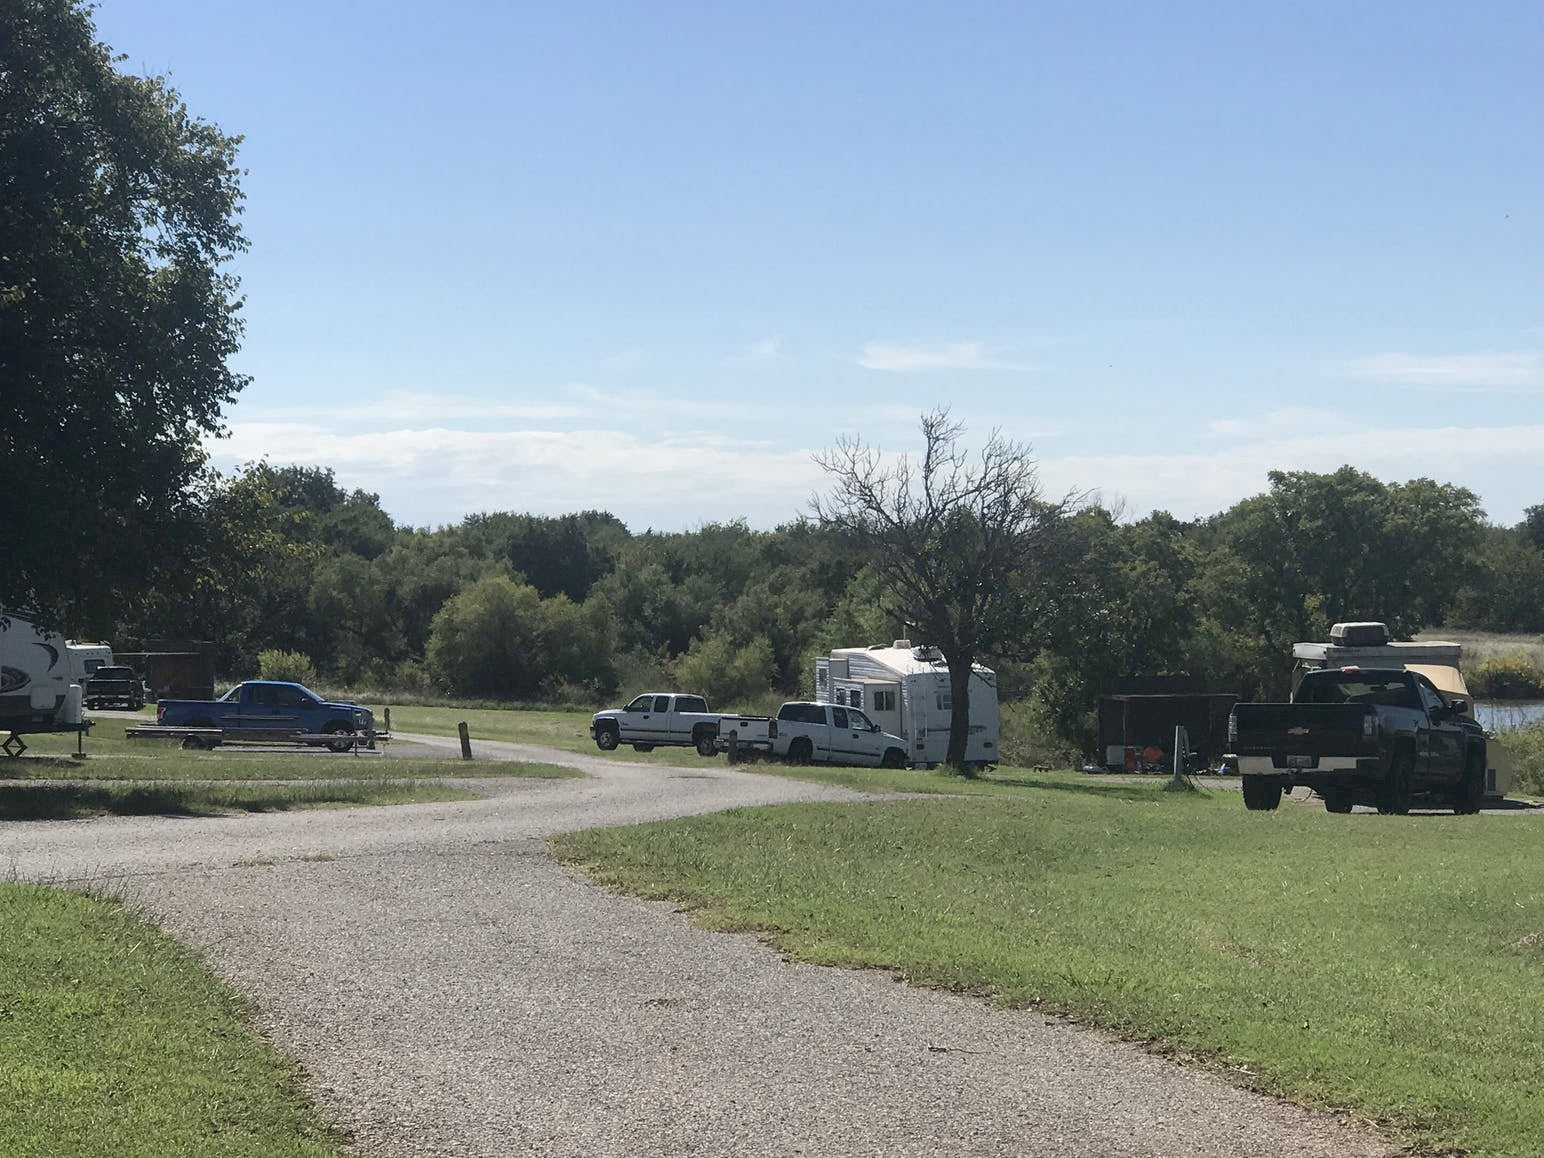 RV parl and campsite inn green field with surrounding forest.